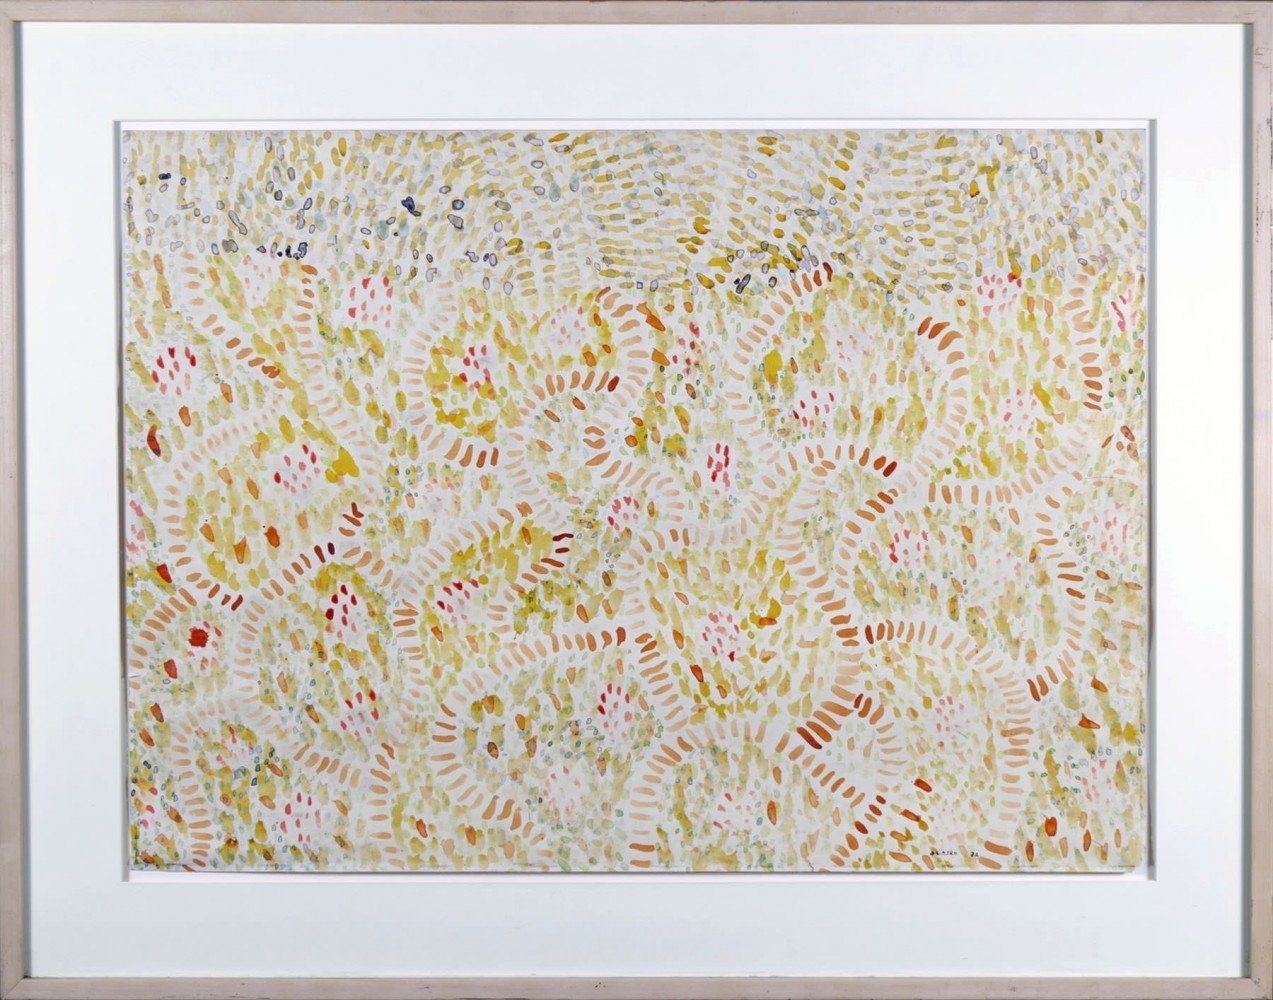 Abstract Colored Ink on Paper Painting: